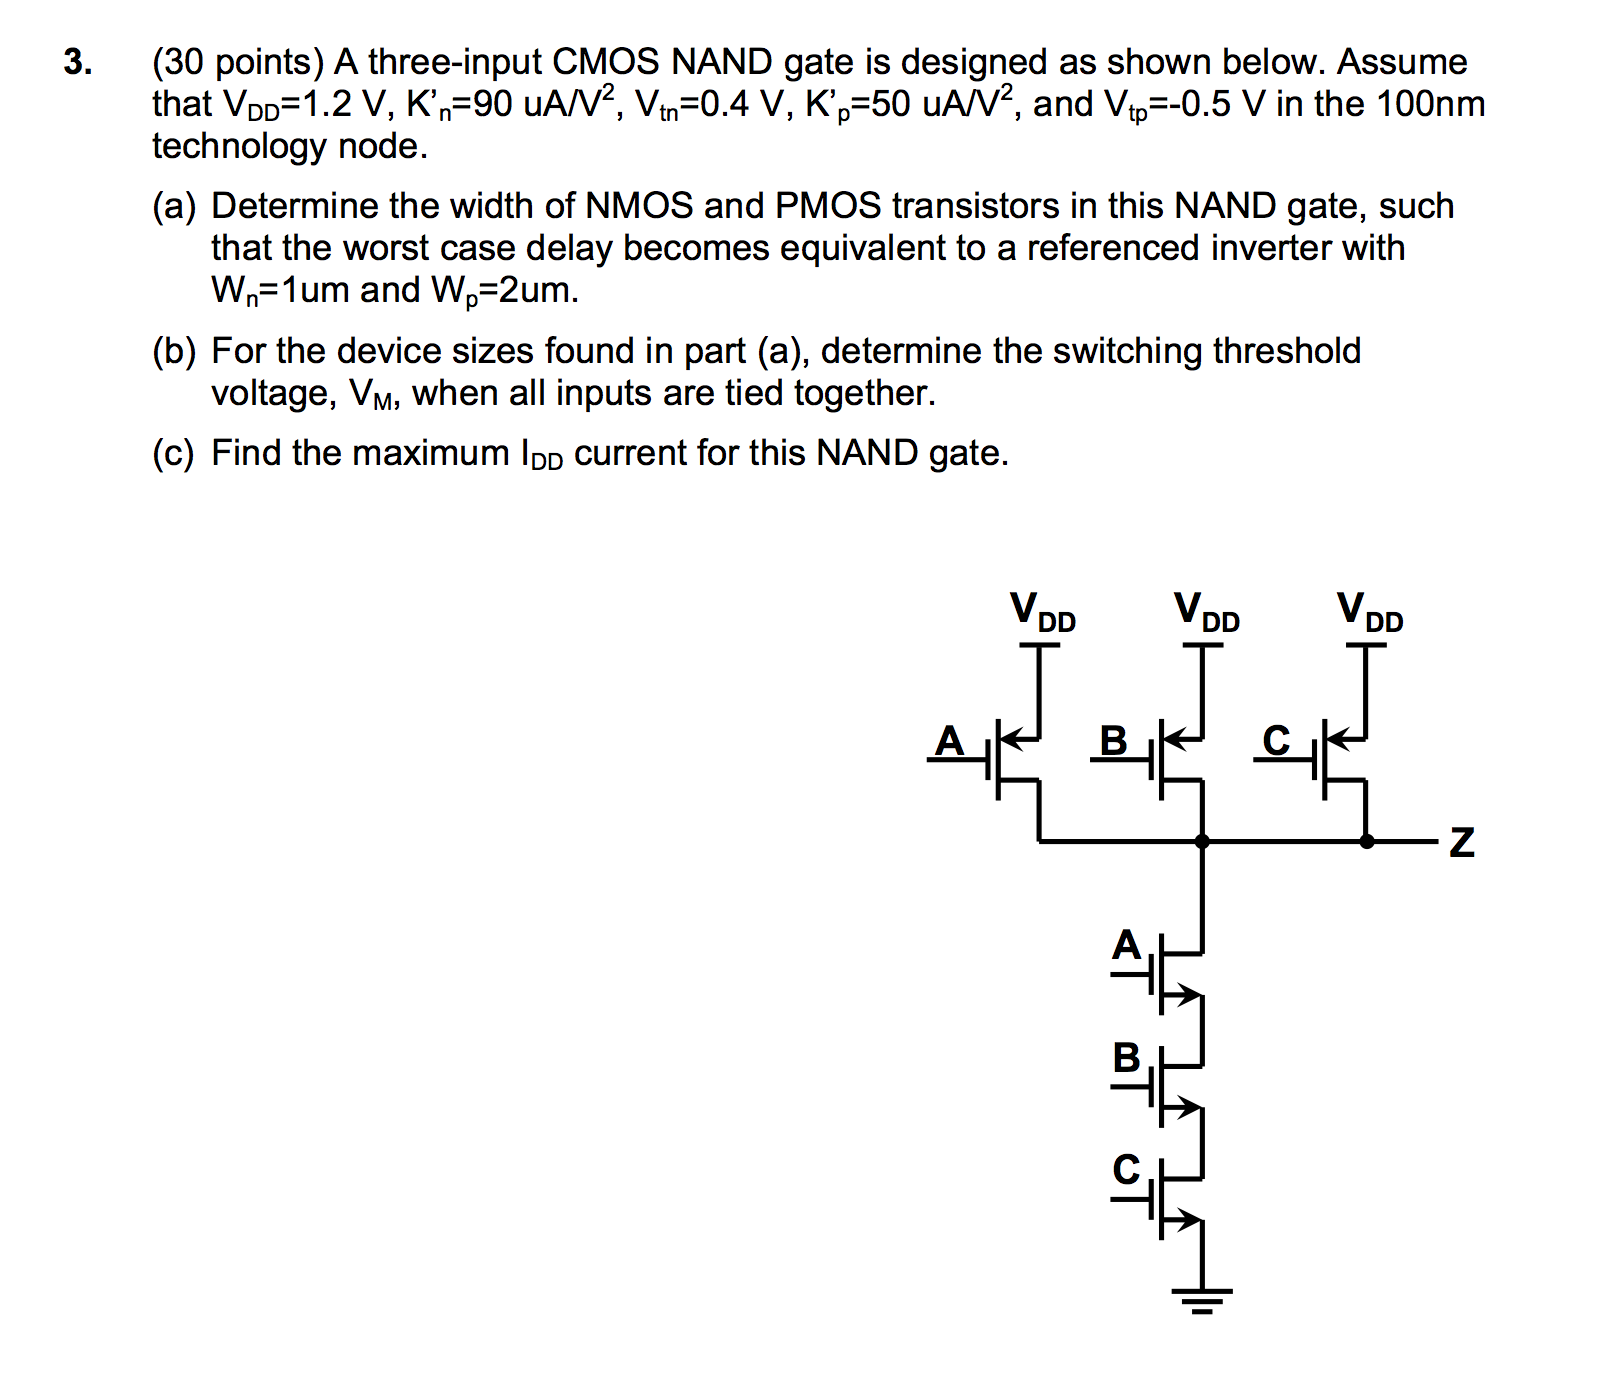 A three-input CMOS NAND gate is designed as shown